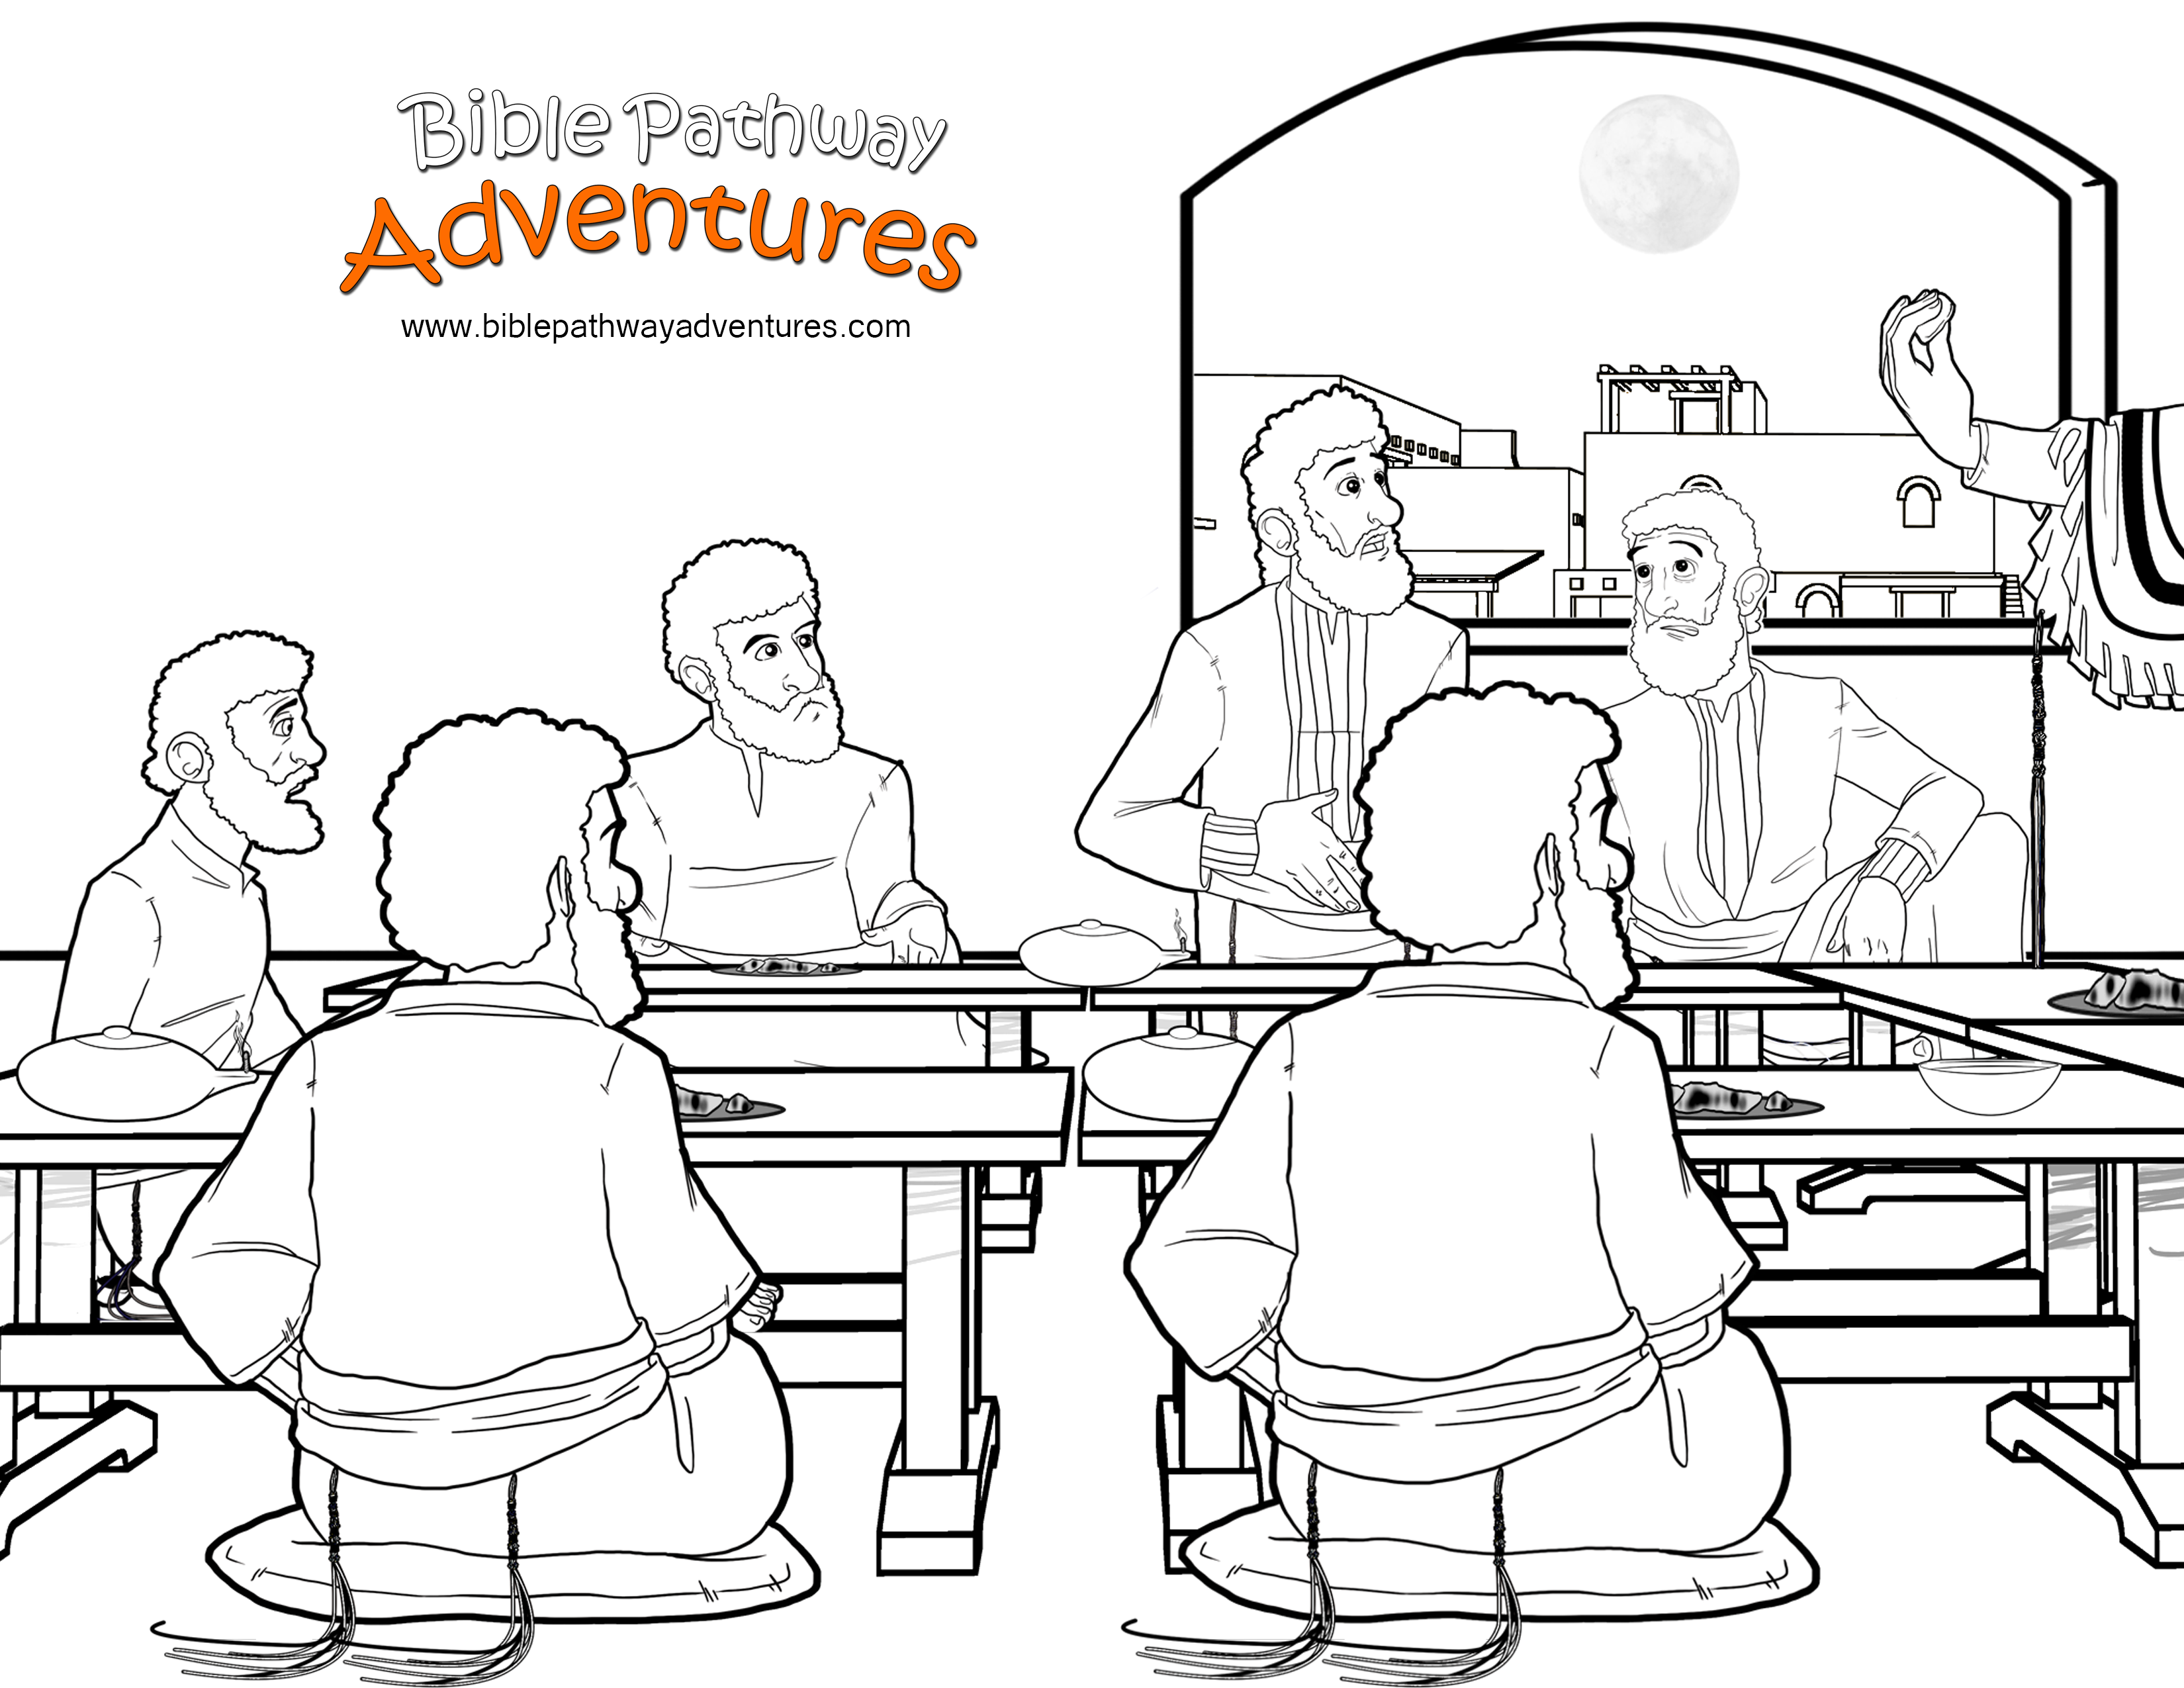 jesus last supper coloring page free bible activities for kids bible activities for kids coloring jesus supper page last